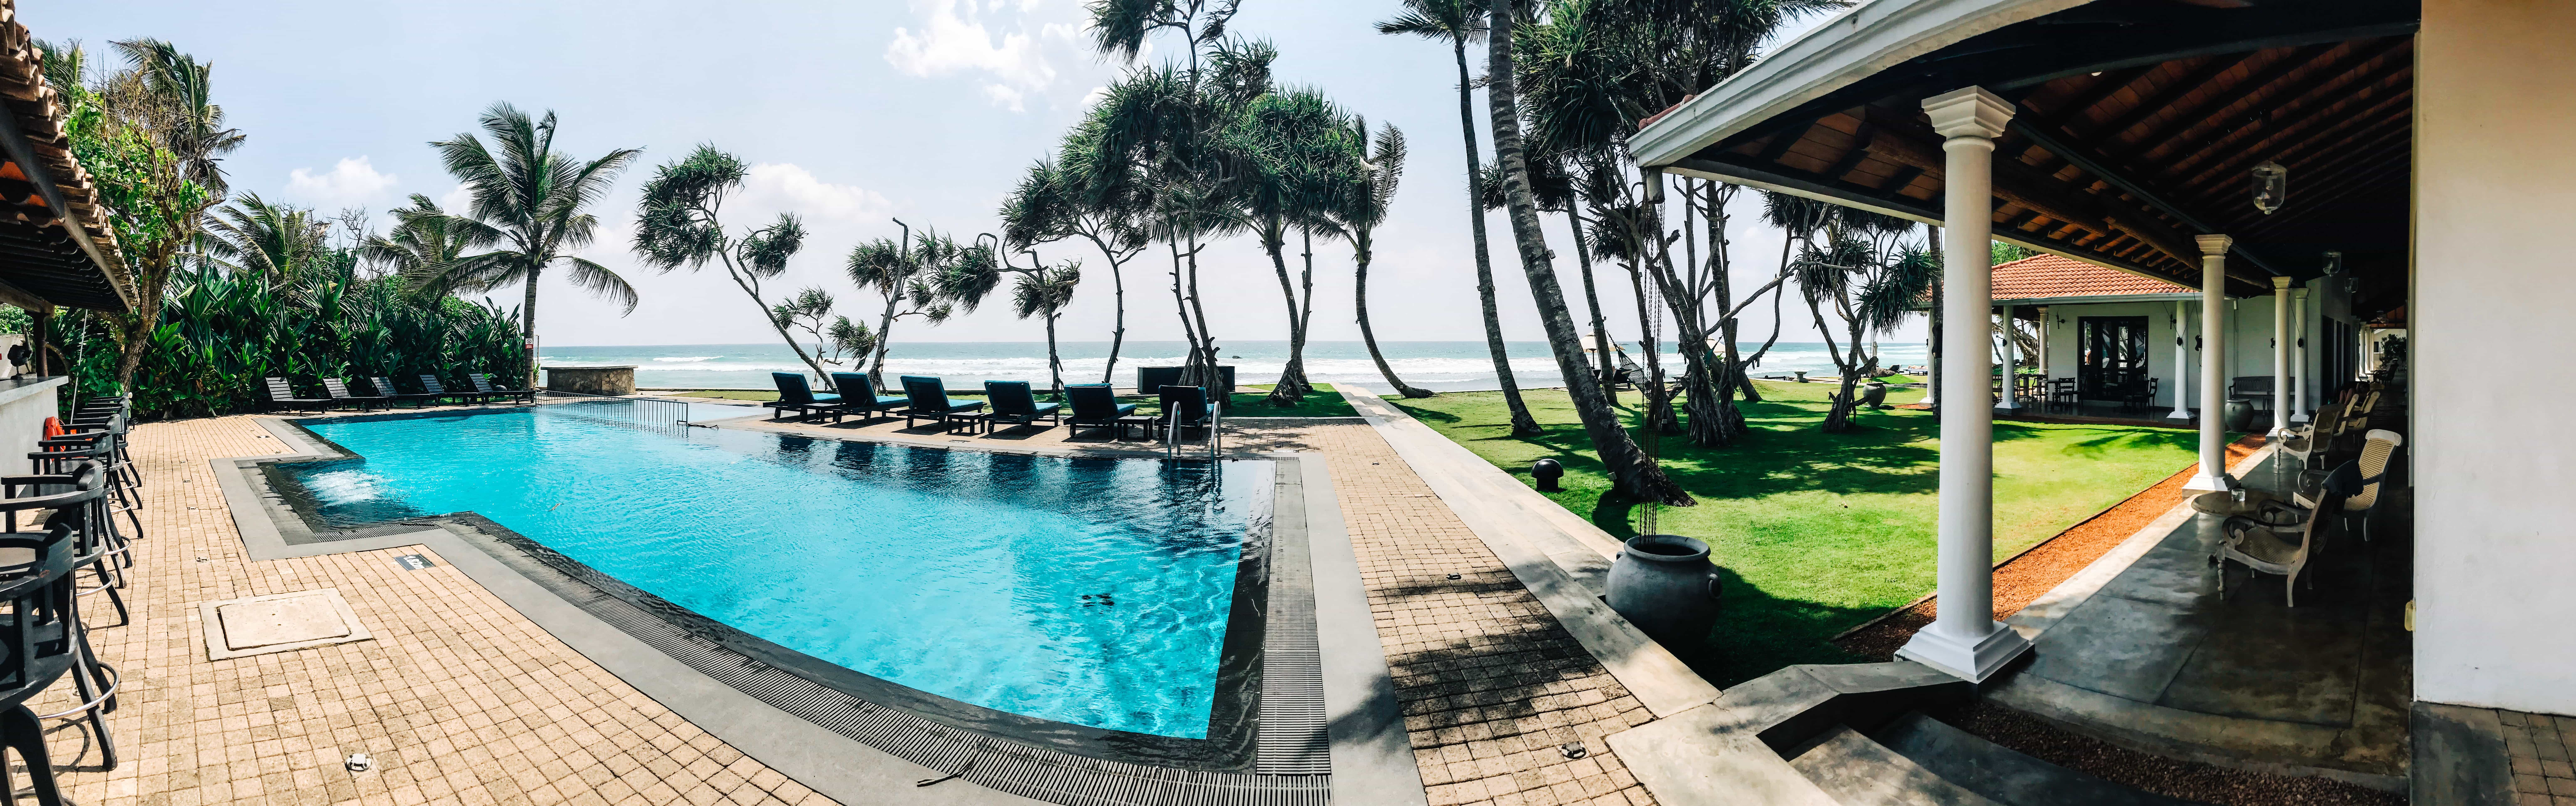 If you're looking for the option of luxury or budget travel in Sri Lanka, be sure you check out Mosvold Villa Properties. Sprinkled along Sri Lanka's southern coastline, these beautiful properties will be just what you need to have an enjoyable, comfortable, and relaxing stay. Read more at www.thefivefoottraveler.com